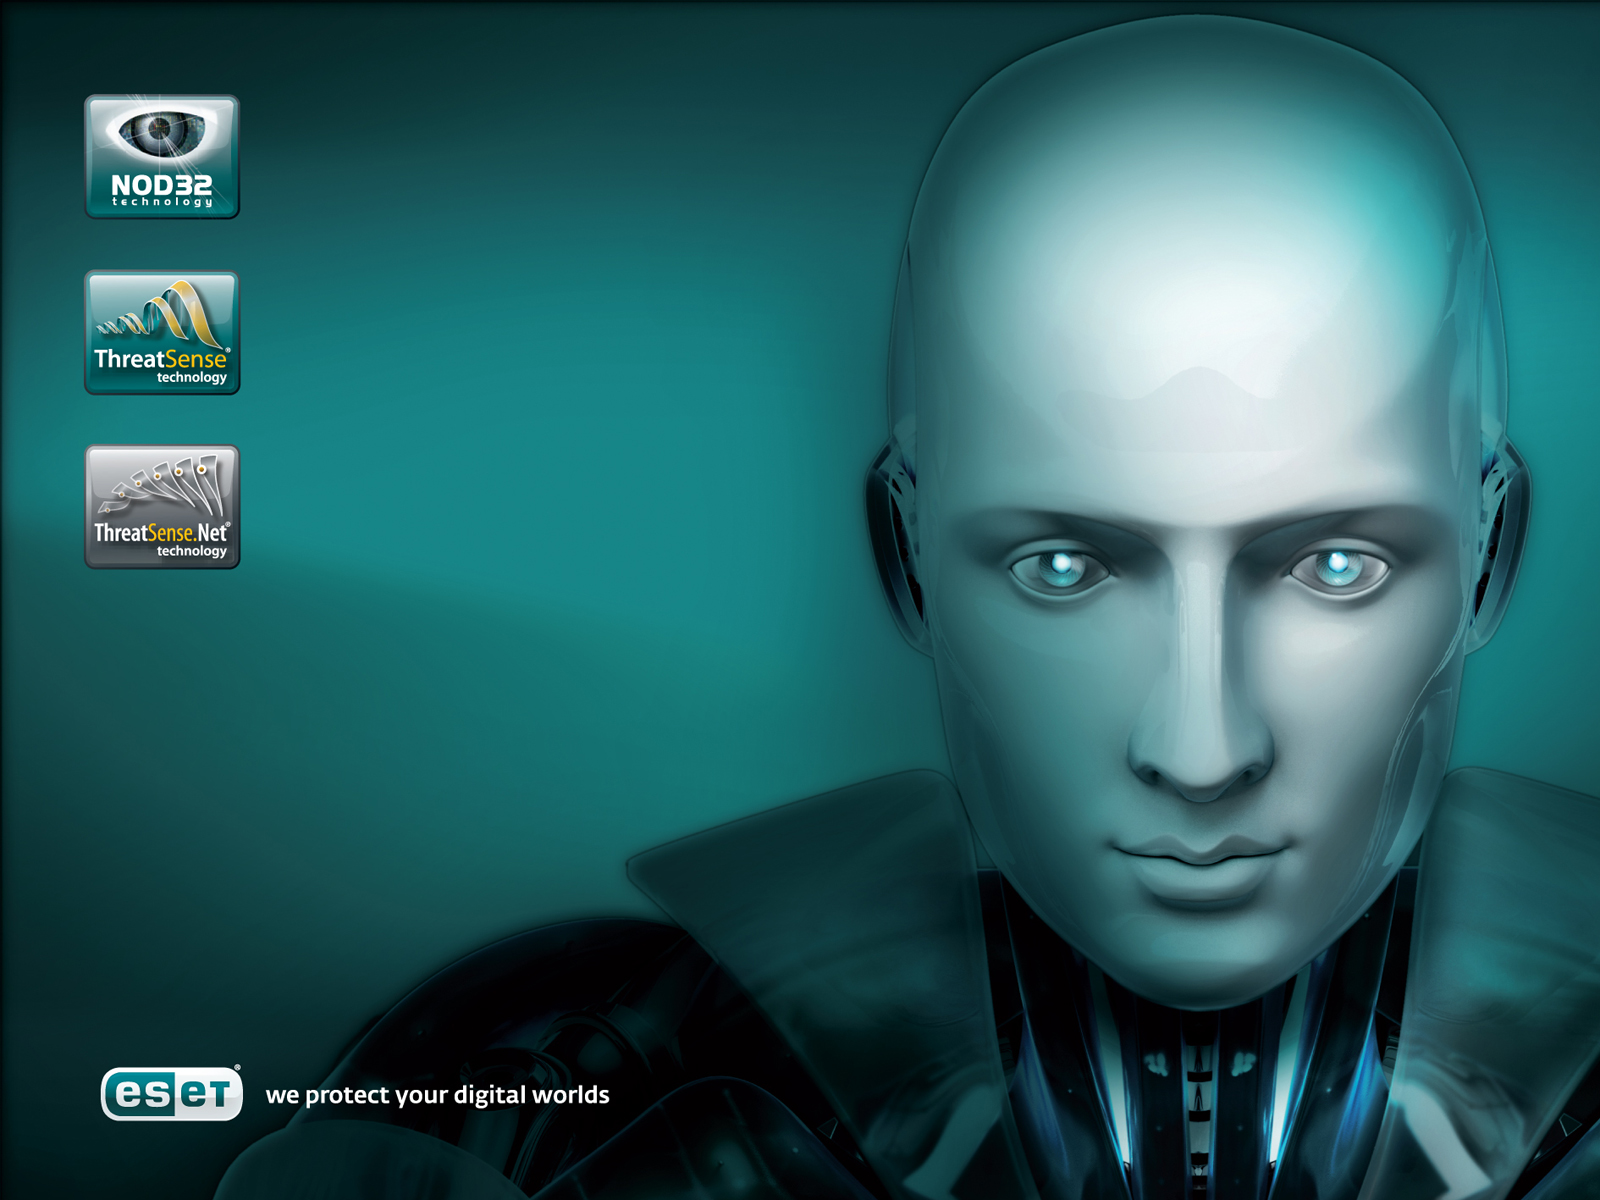 Nod32 Eset Smart Security 5.0.93.7Final Español-x86 x64+Lic